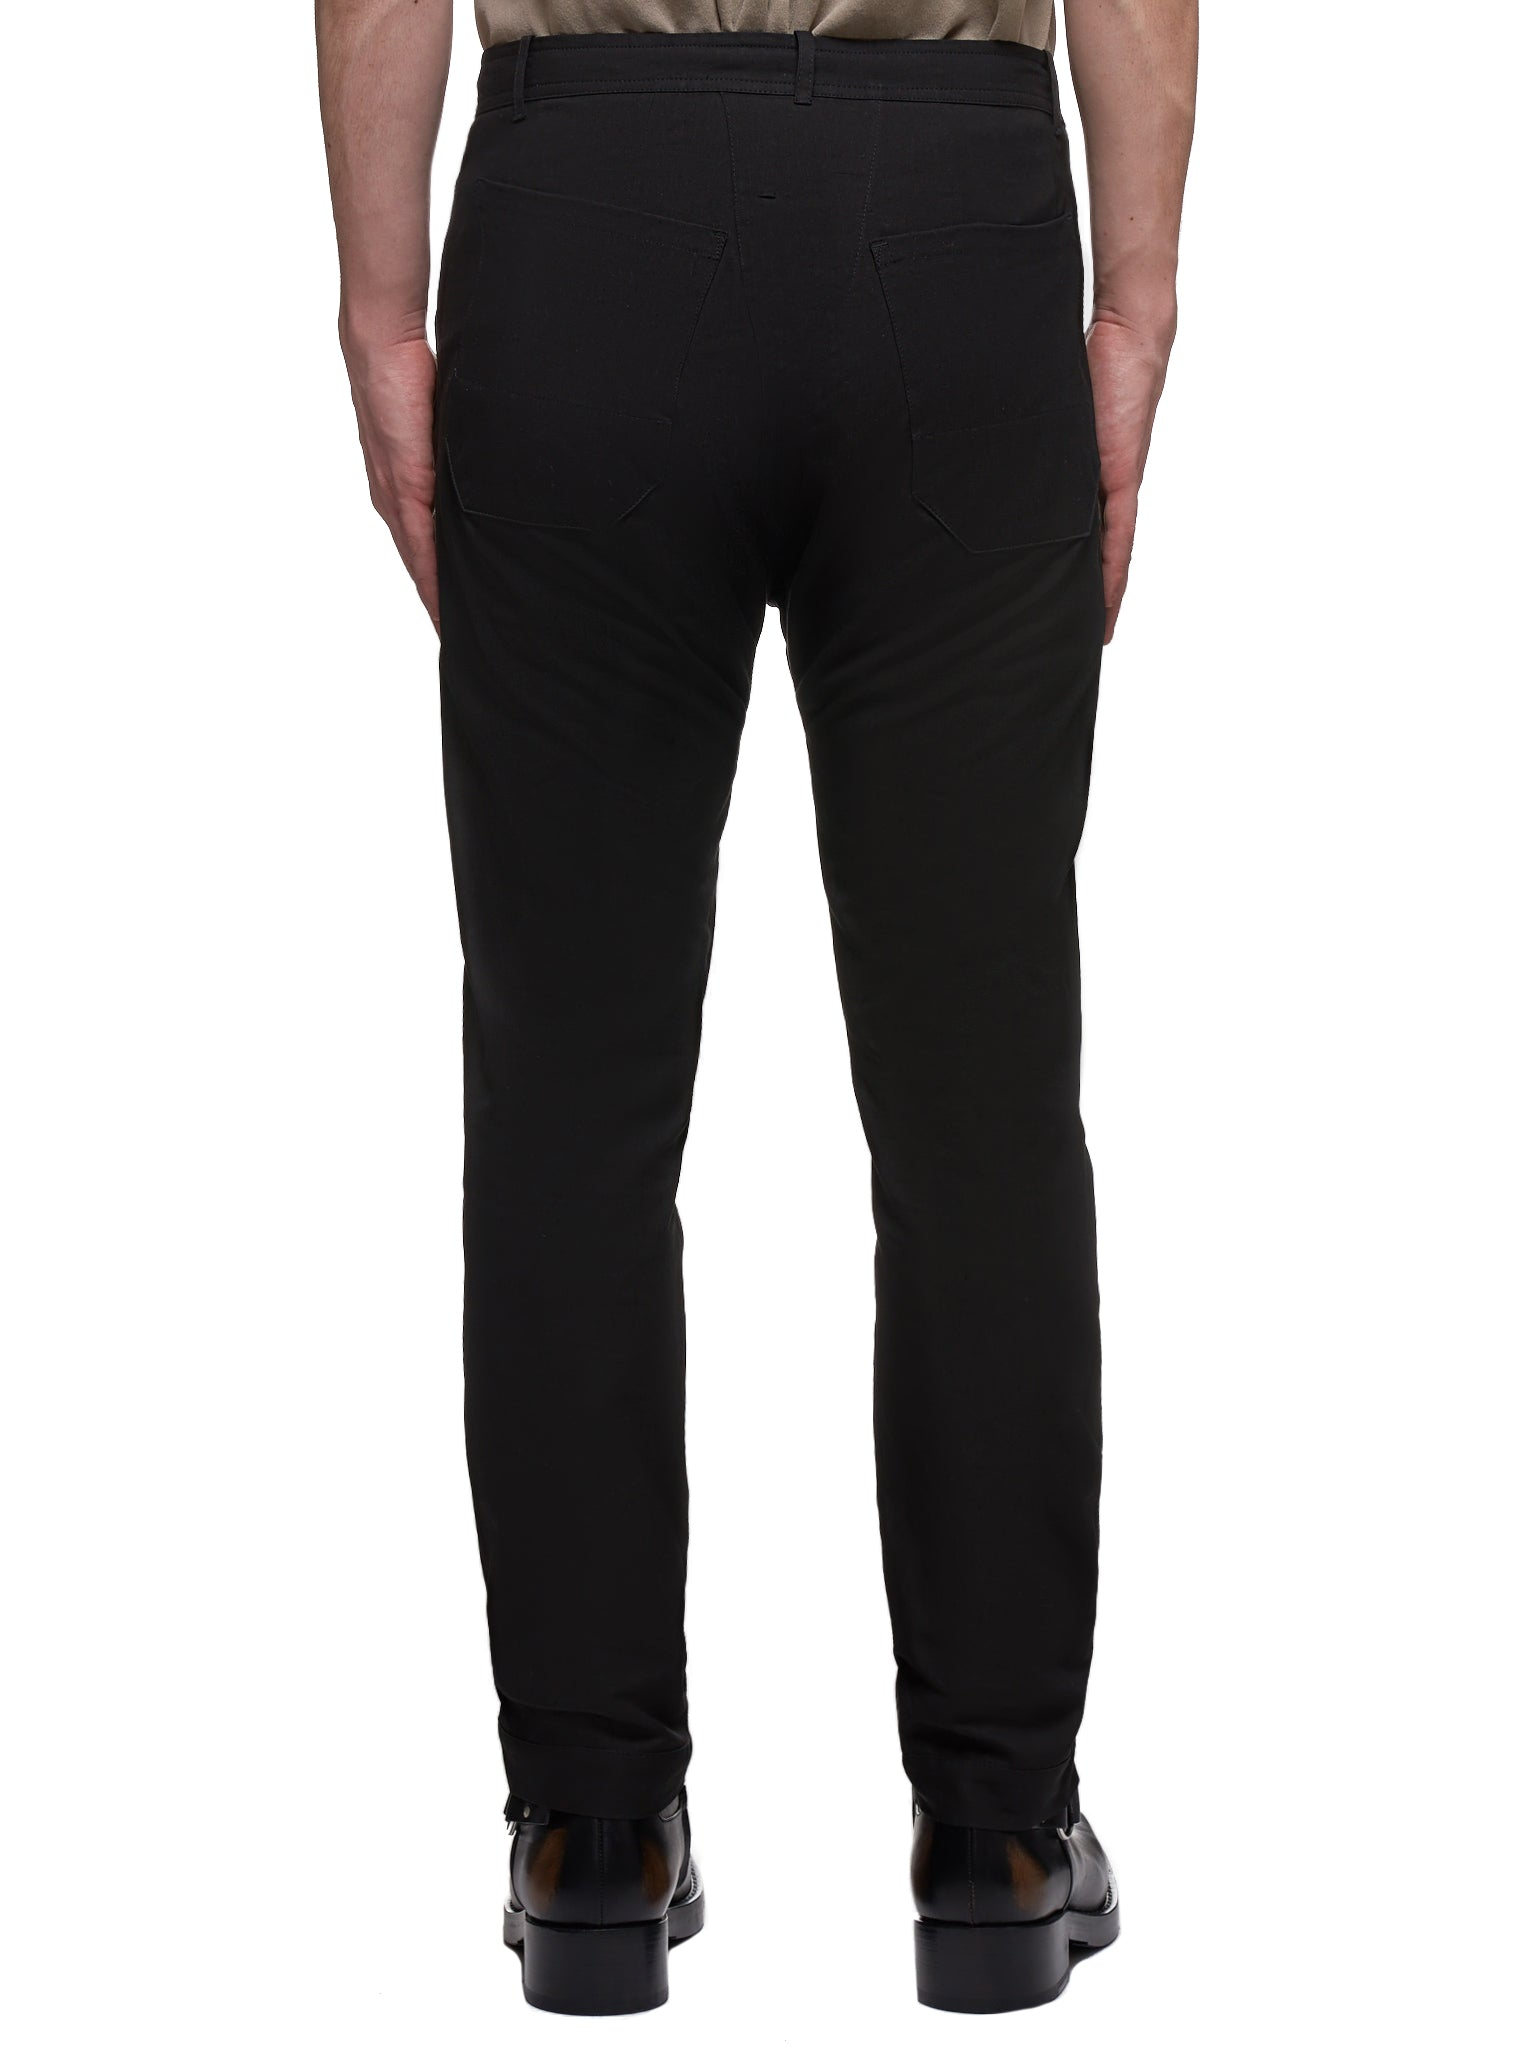 Twill Trousers (TROUSERS-49-TWILL-BLACK)